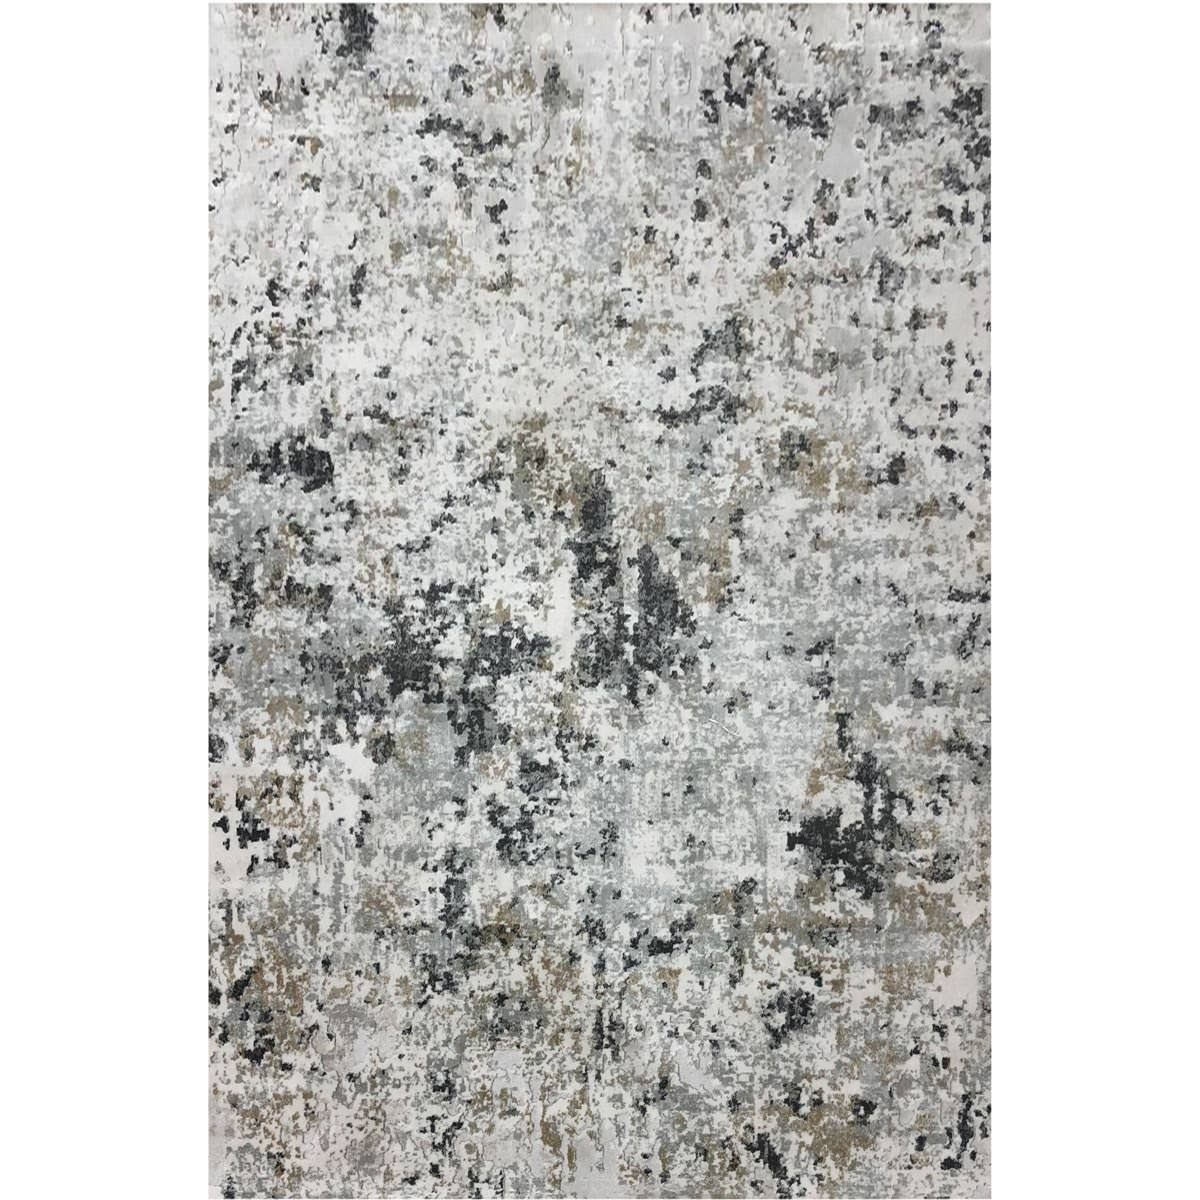 Madrid Rug 07 Grey/Beige 1